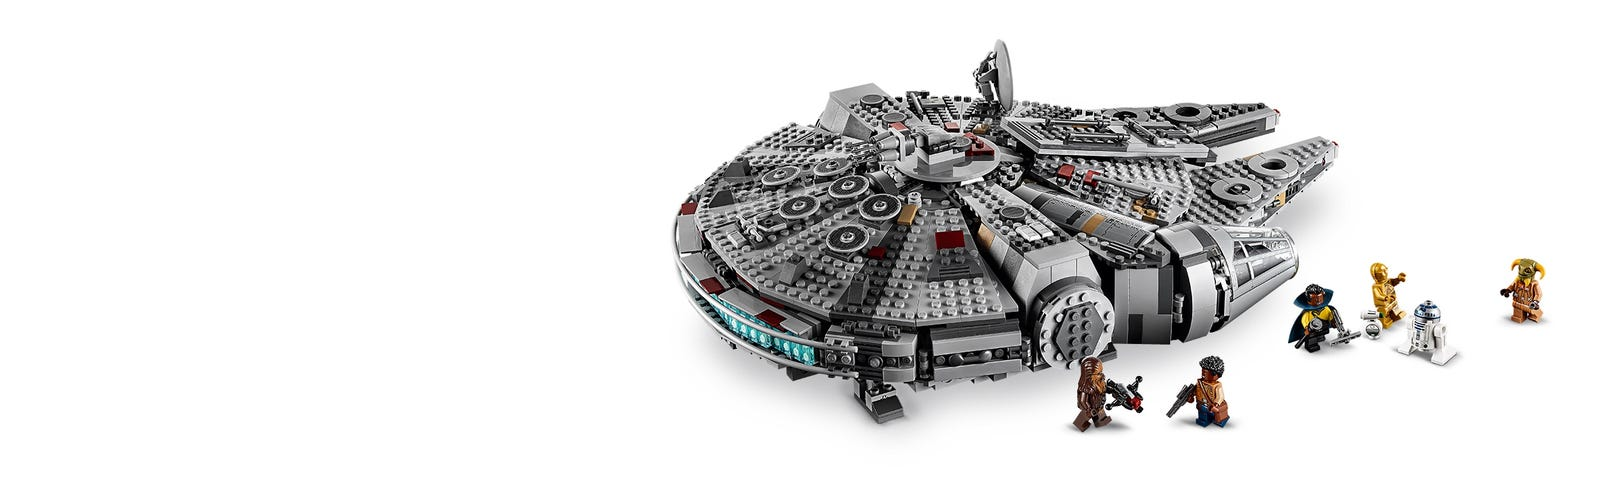 Millennium Falcon 75257 Star Wars Buy Online At The Official Lego Shop Us